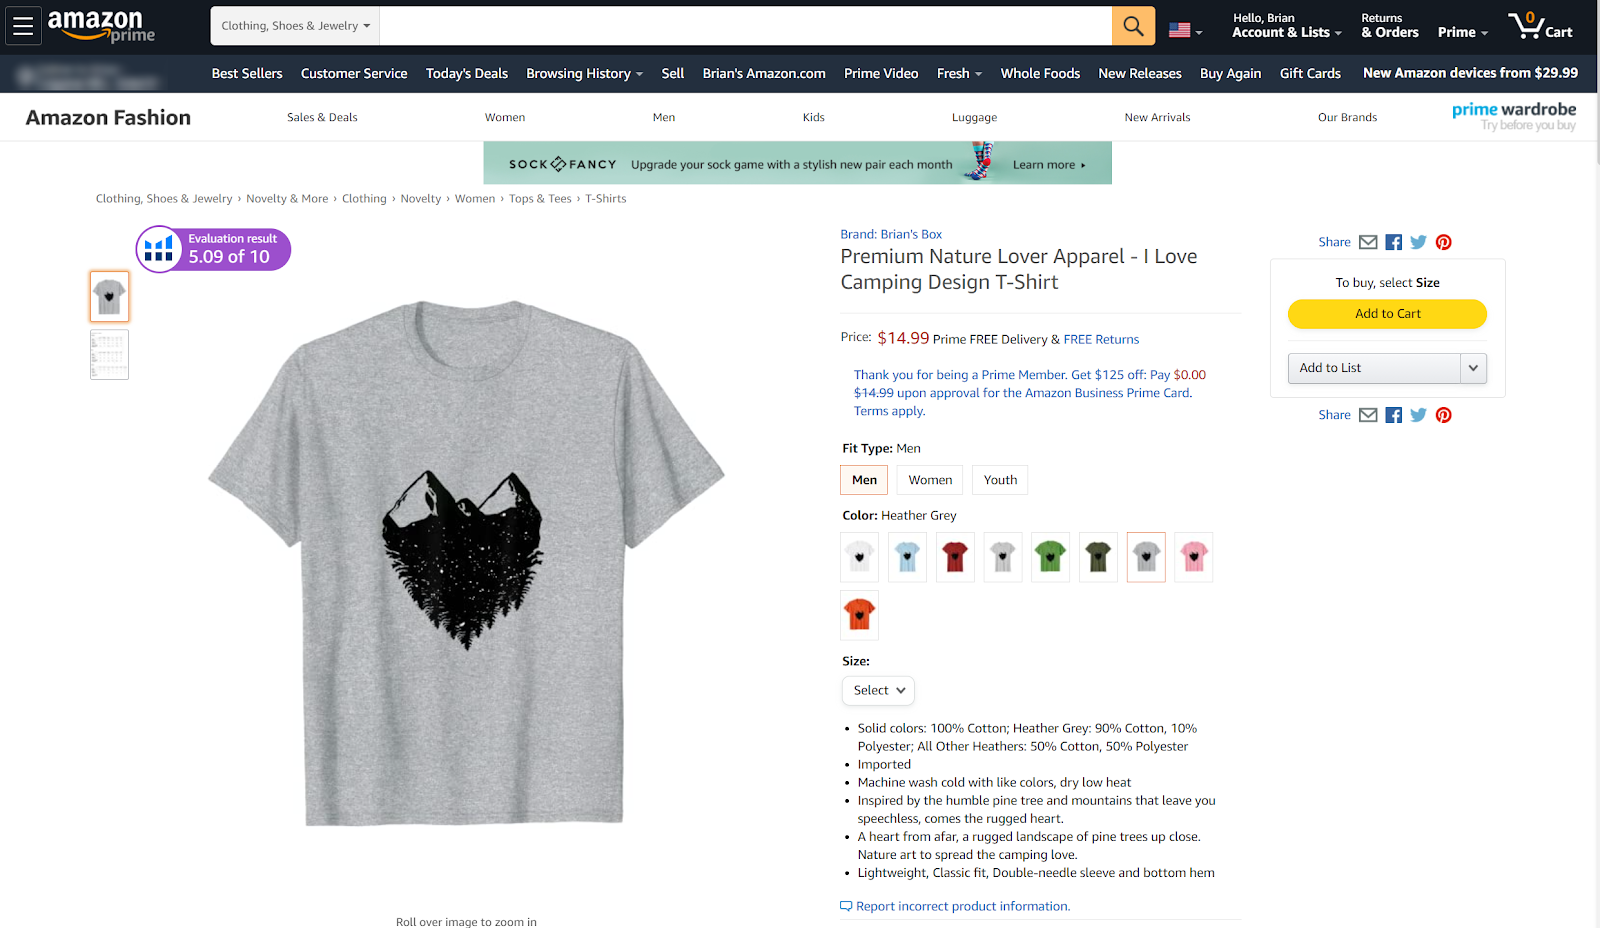 merch by amazon product approval